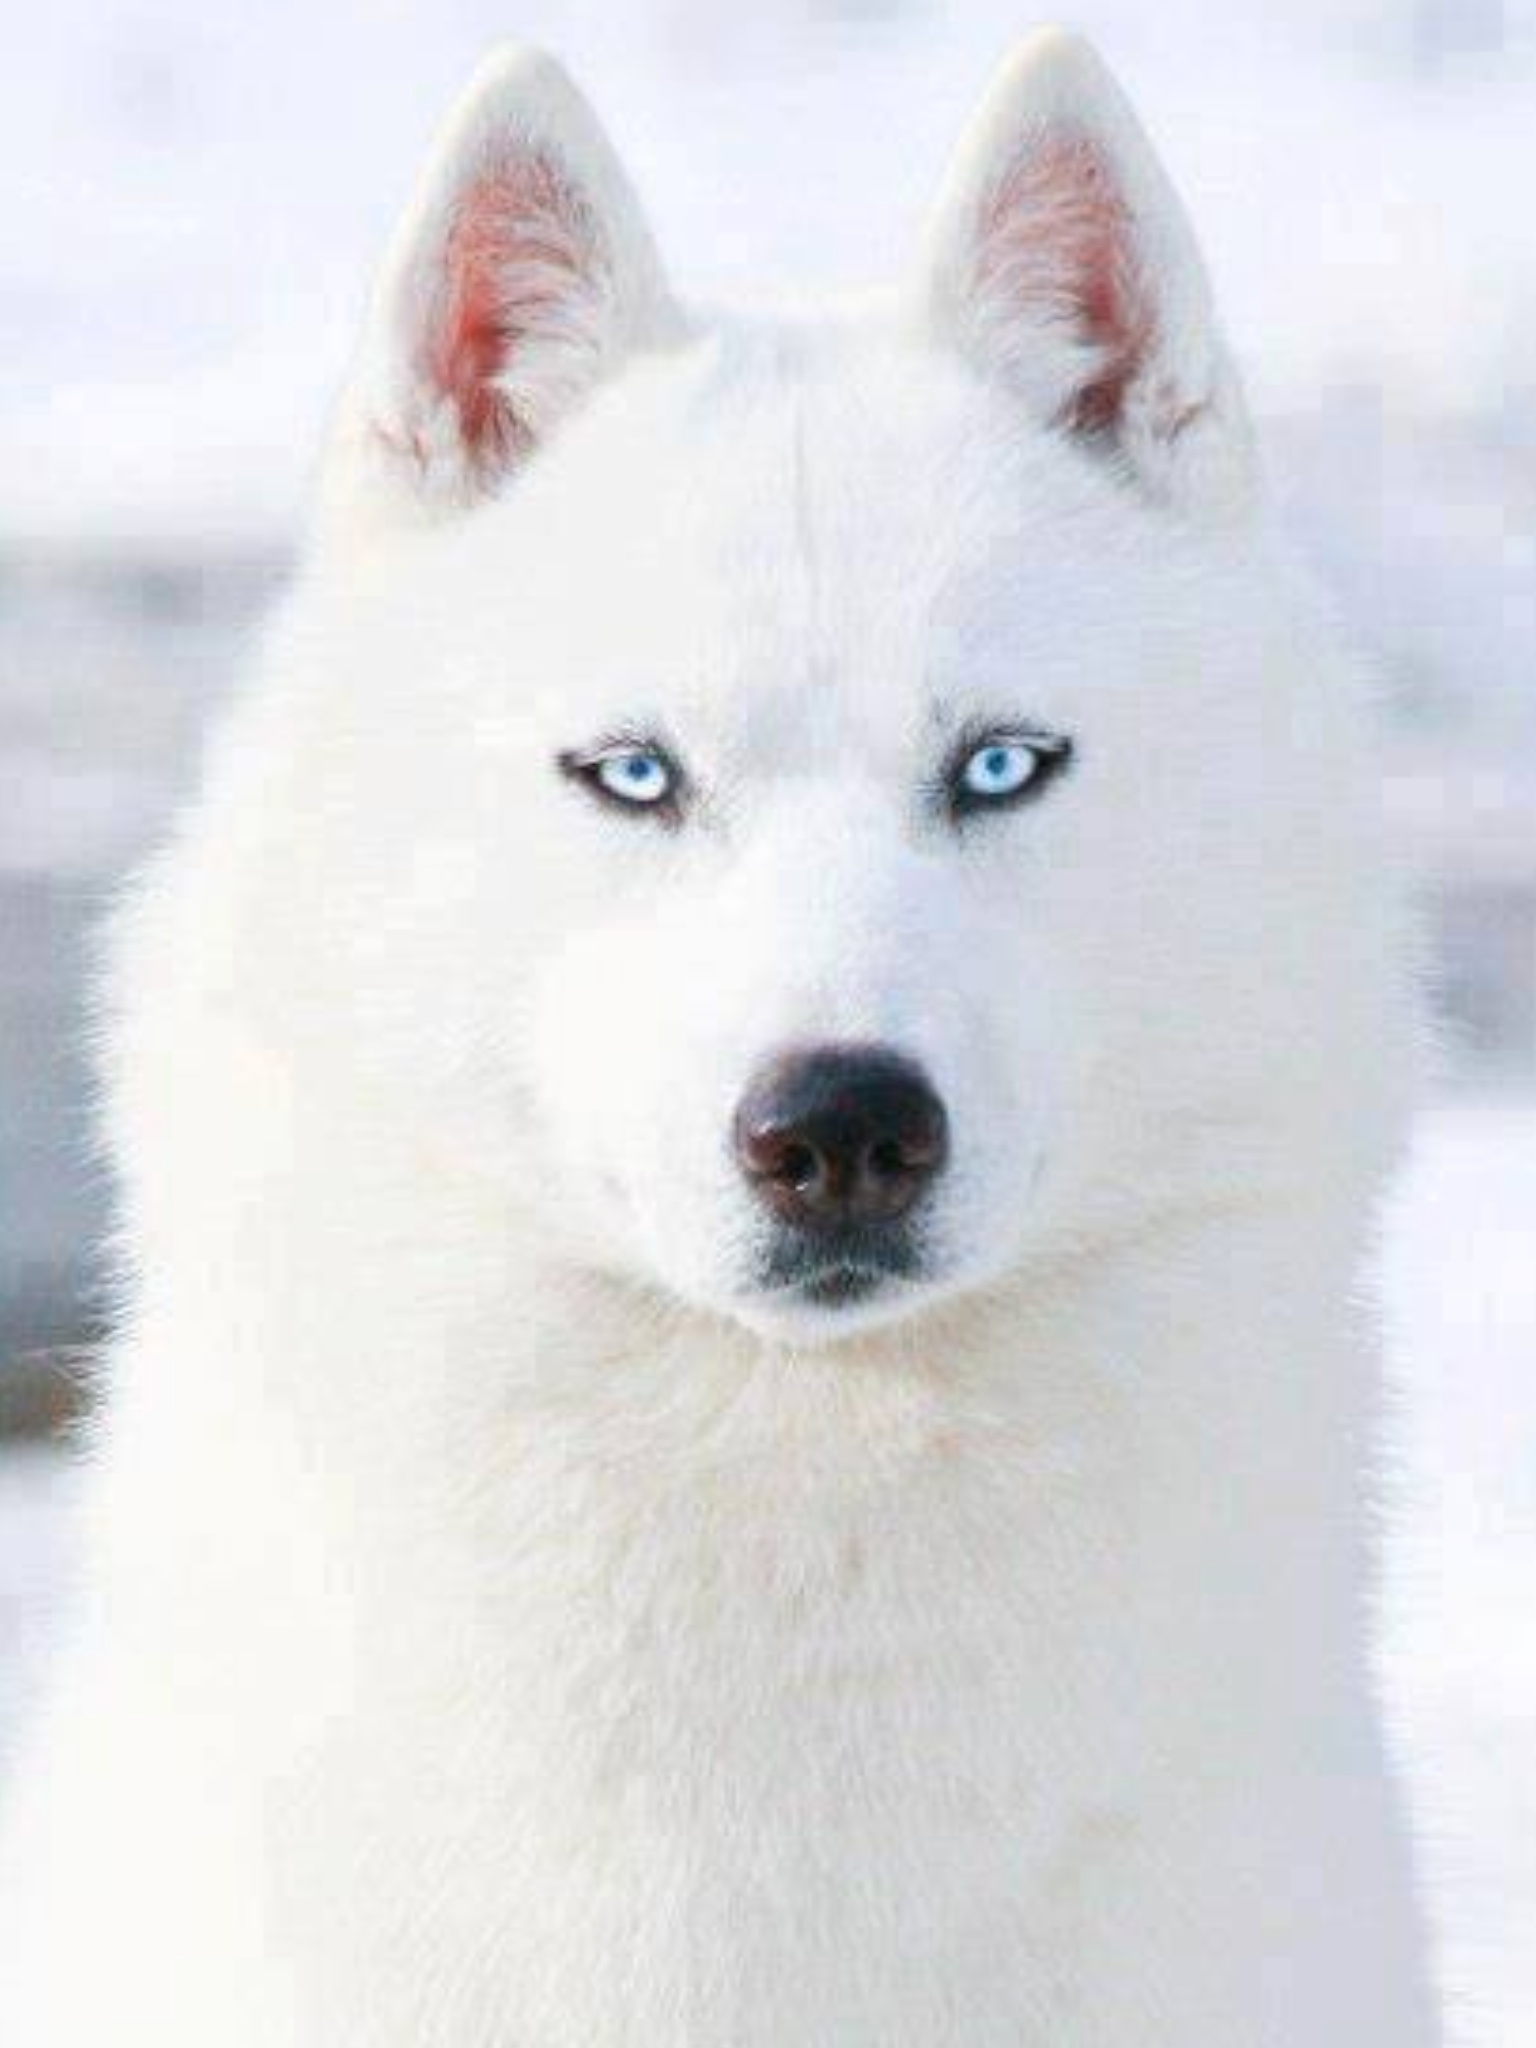 Drawn husky fluffy dog Blue PUPPIES White Eyes AND